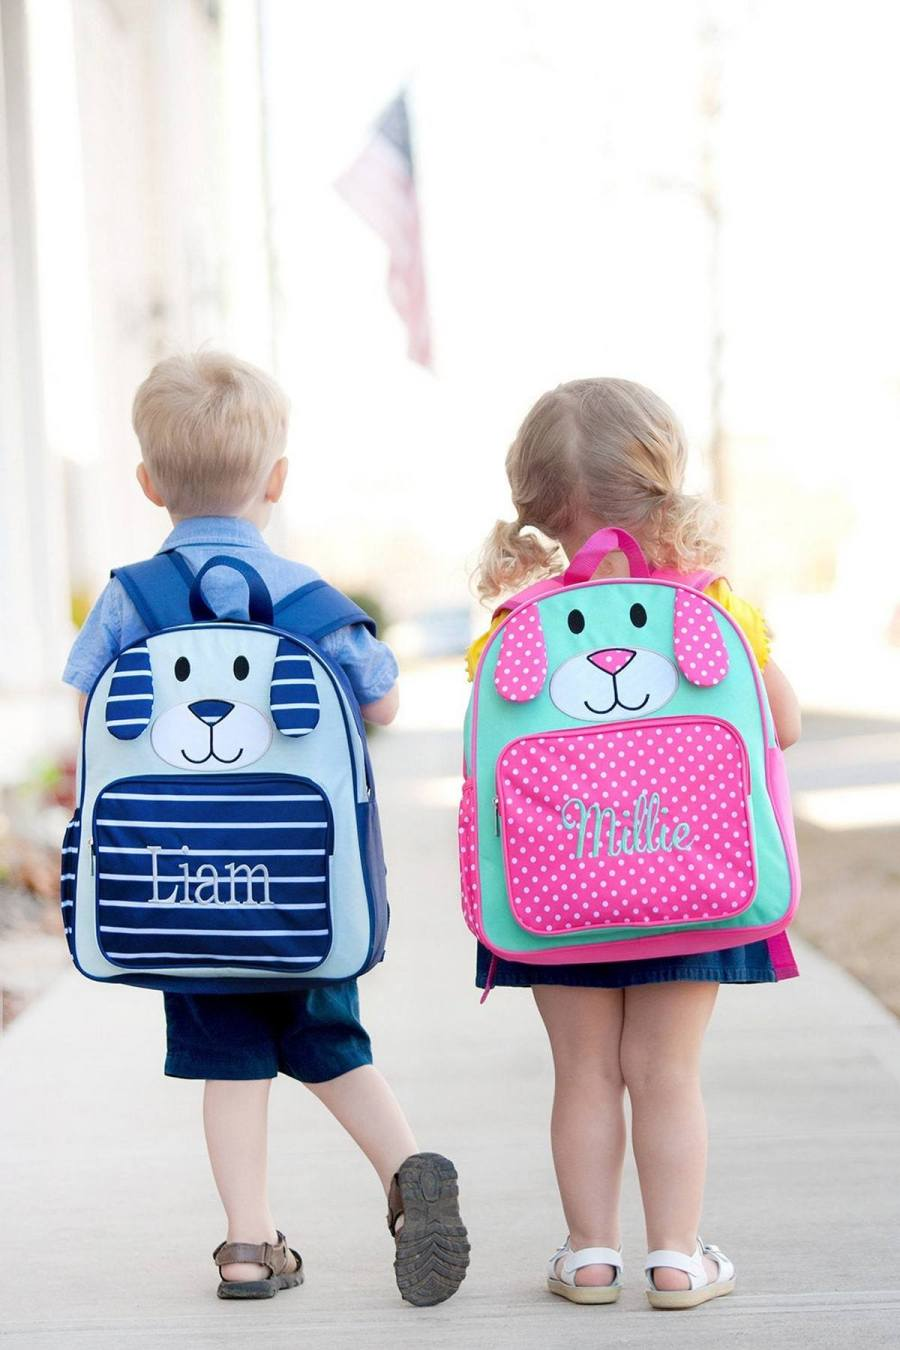 It may feel like summer's in full swing, but the time has arrived to do your back-to-school shopping for the kiddos.